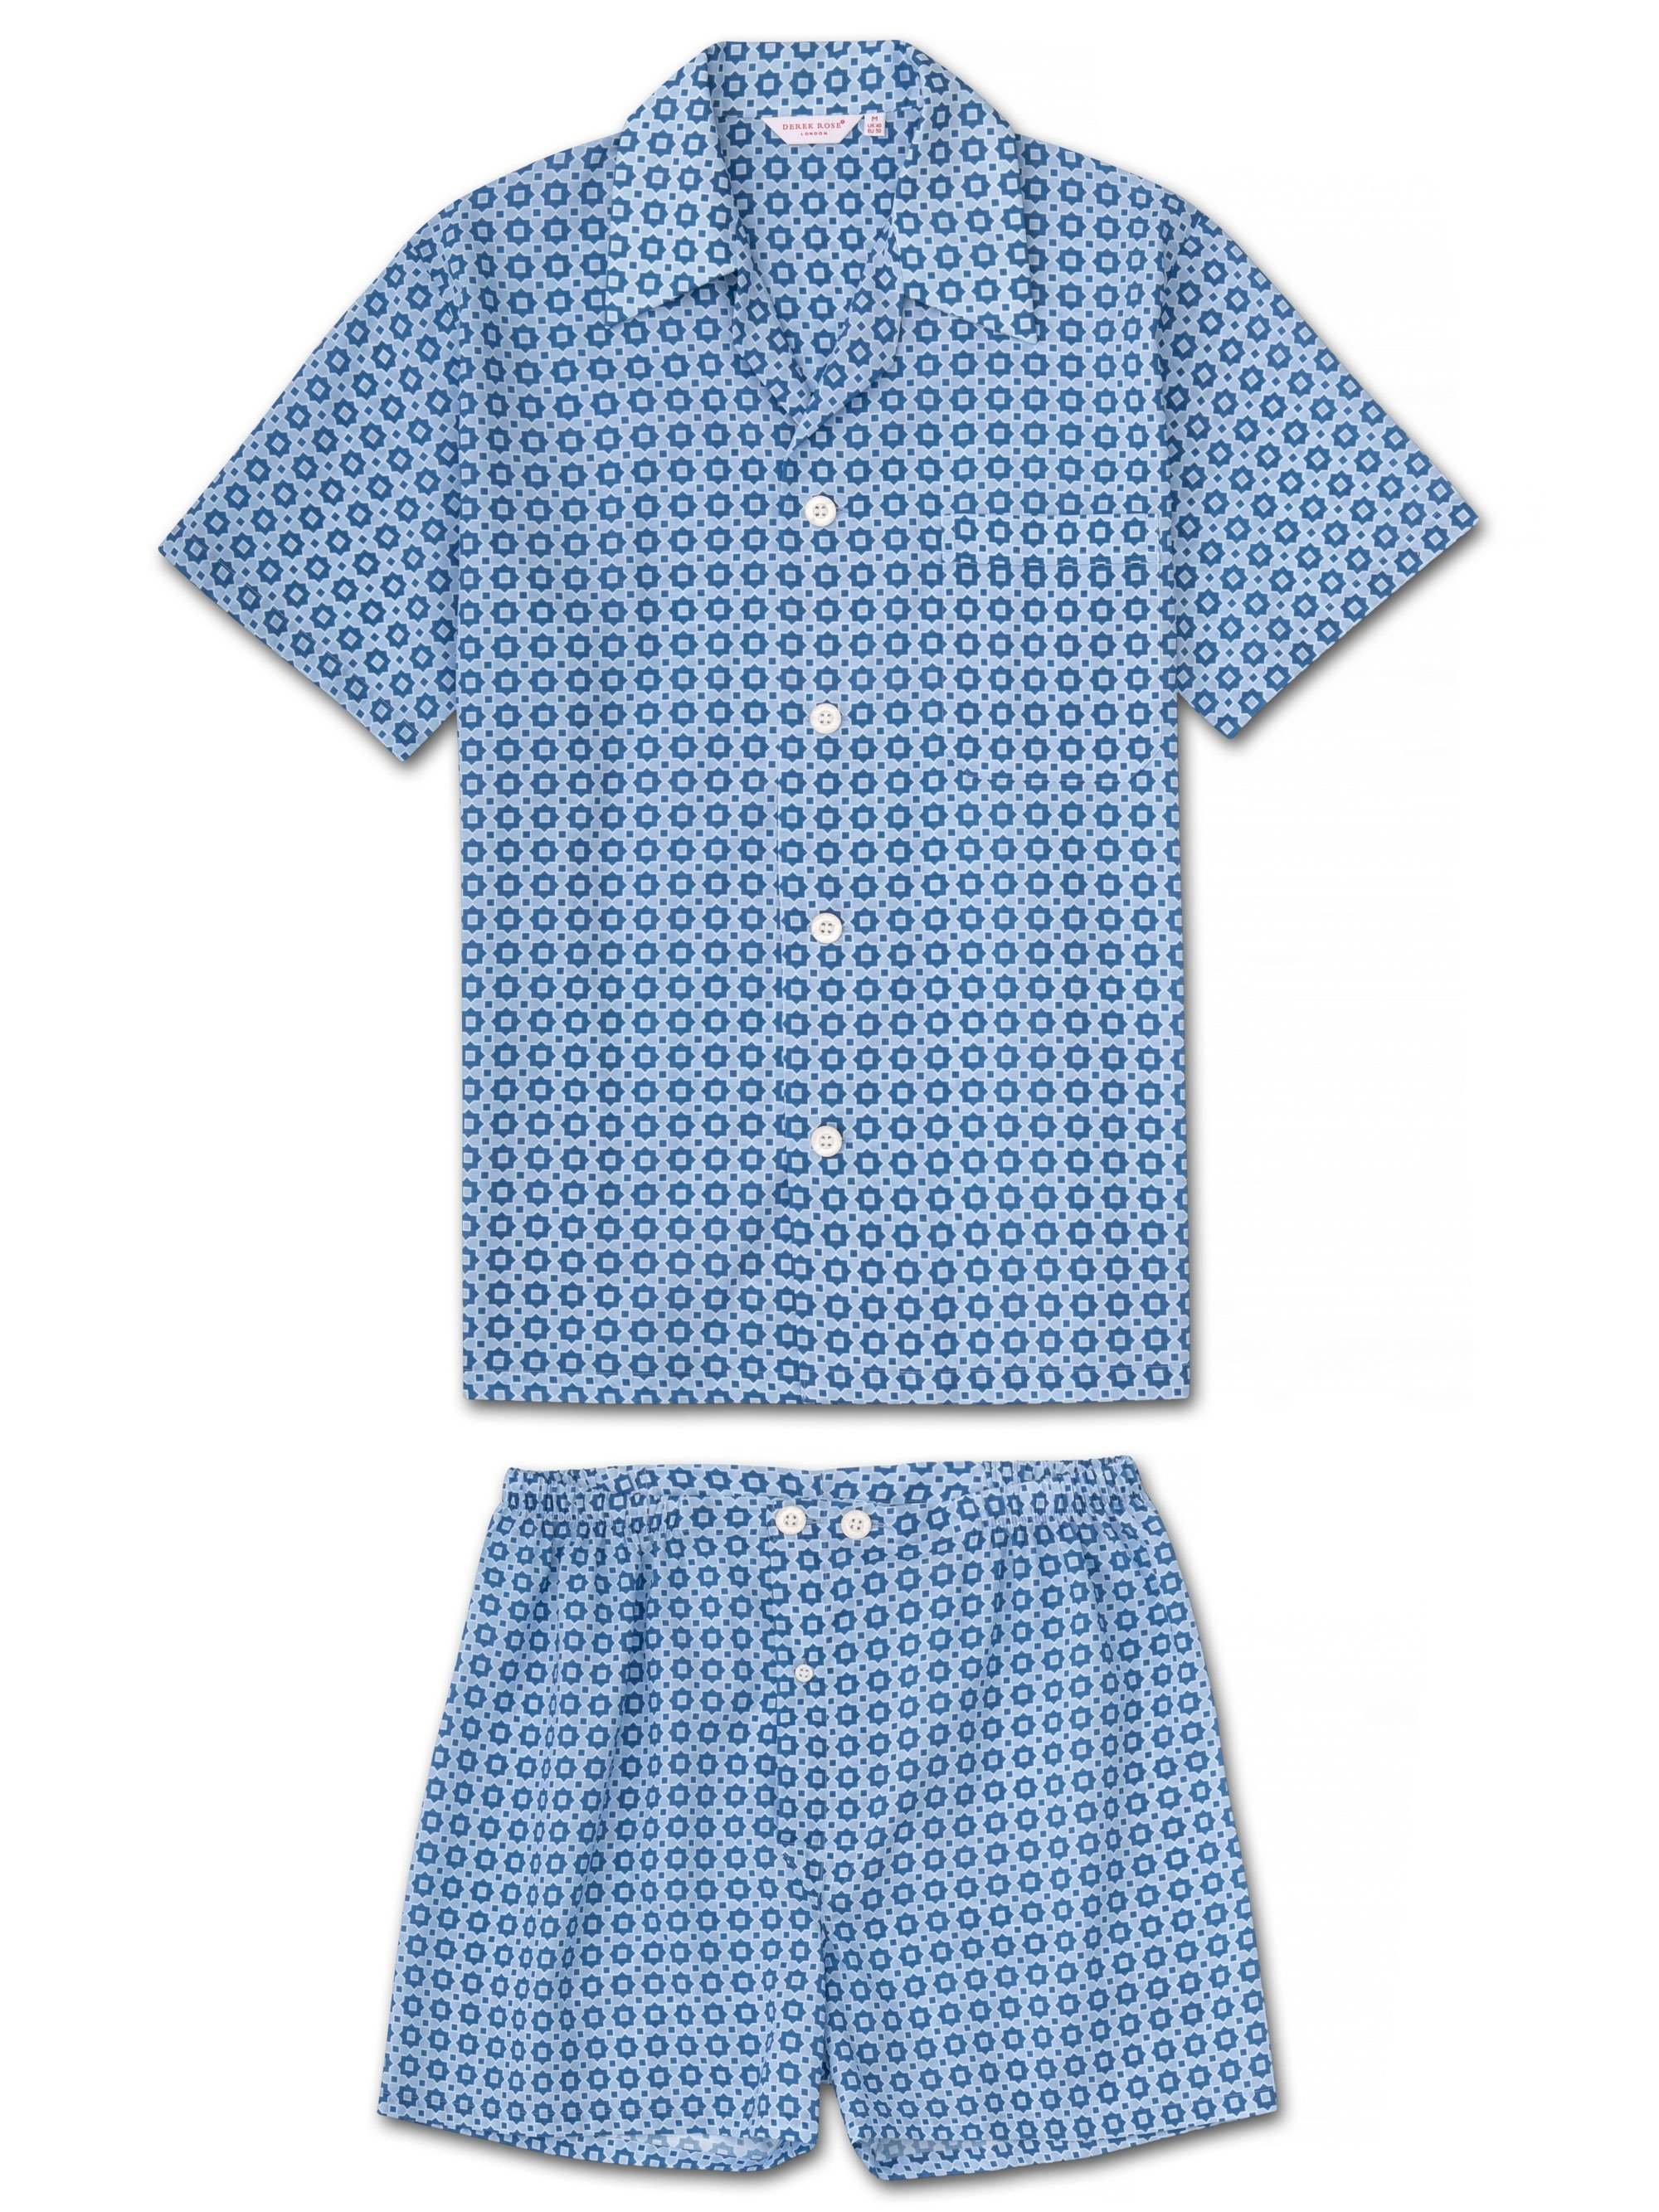 Men's Short Pyjamas Ledbury 34 Cotton Batiste Blue